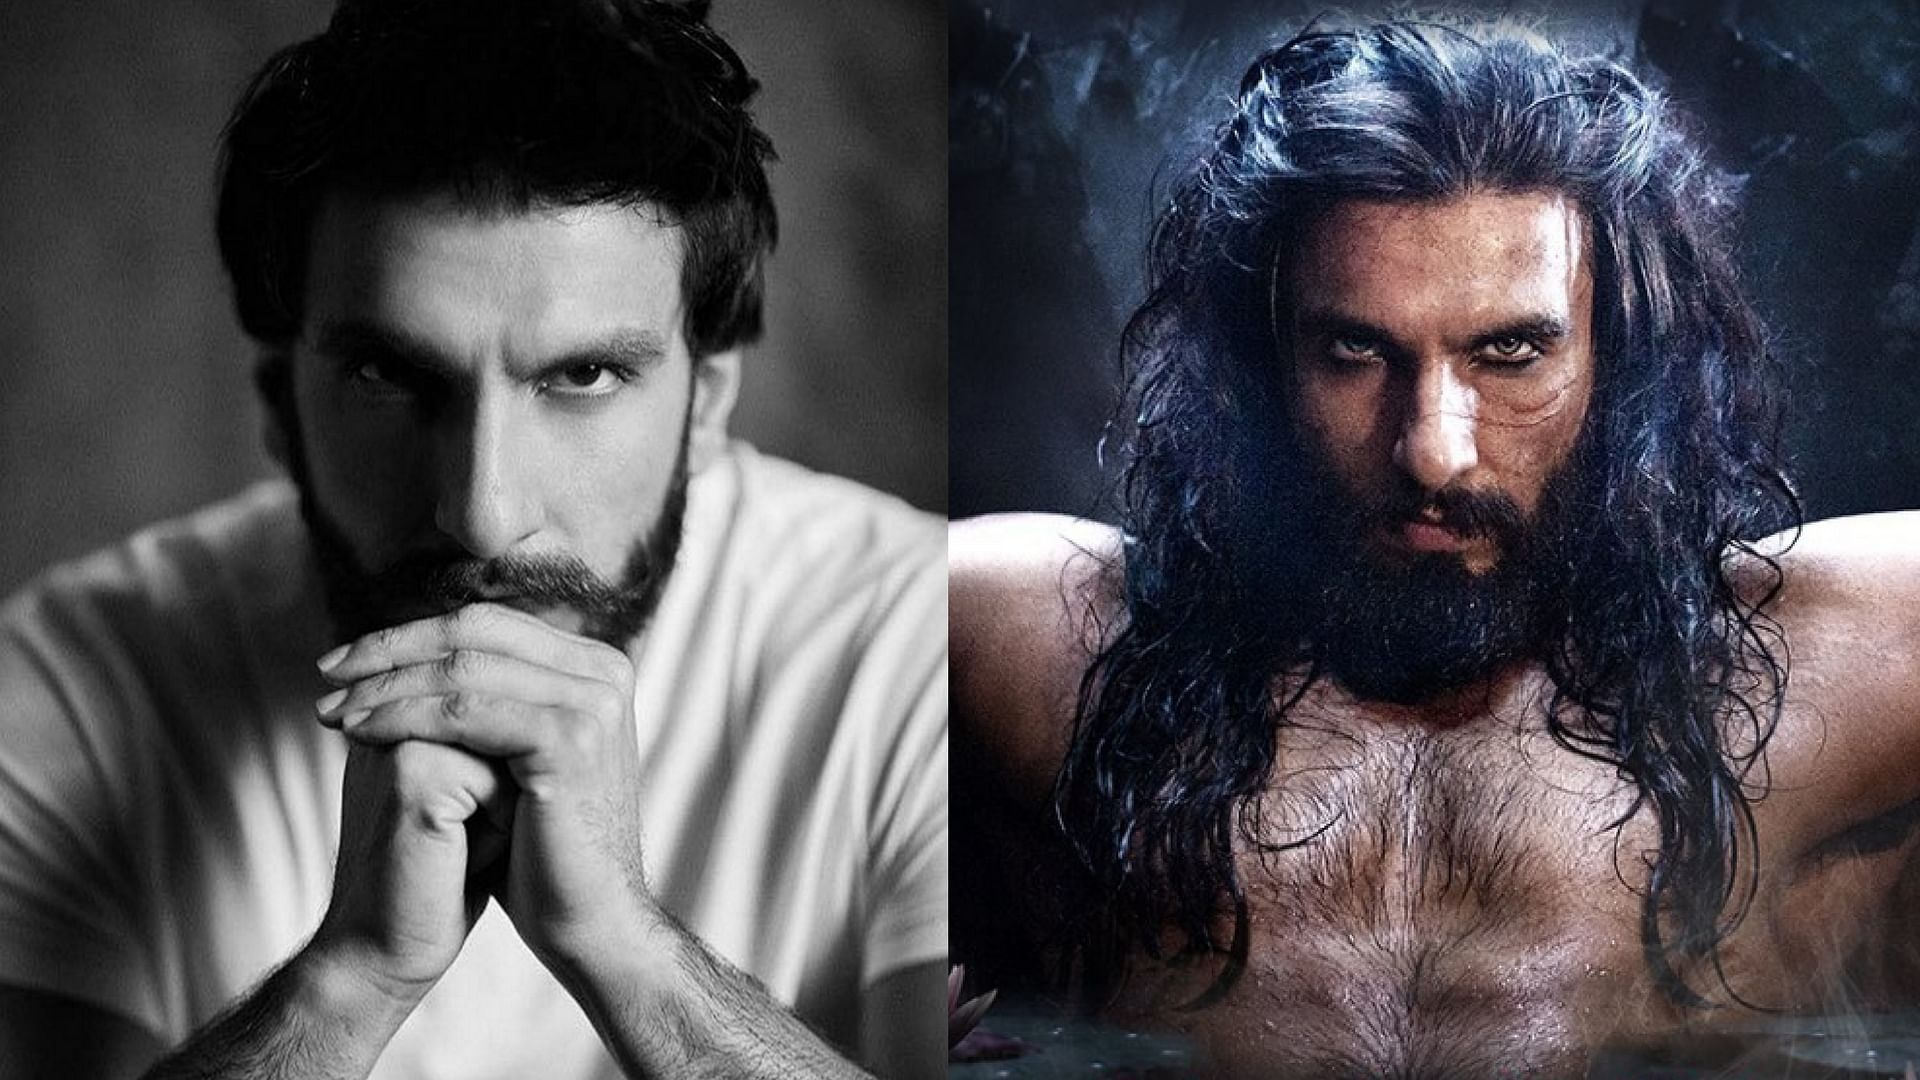 Things that Ranveer Singh did to get into the character of Alauddin Khilji for<i> Padmavati</i>.